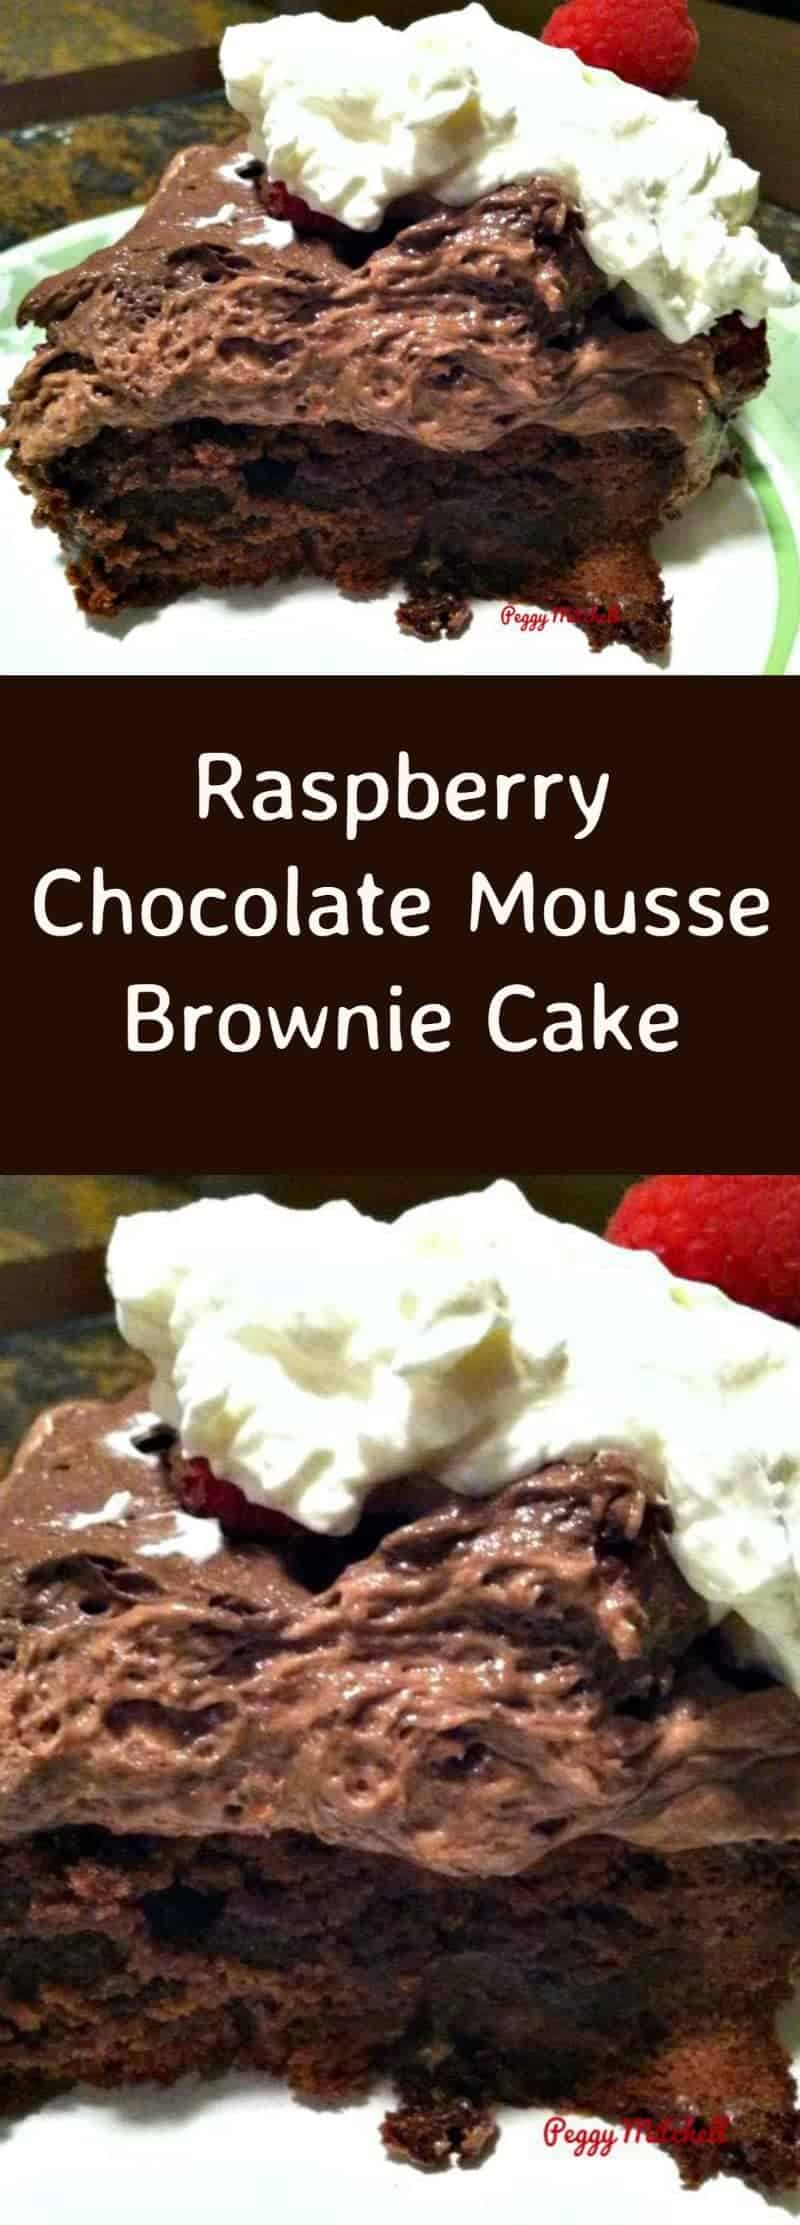 Raspberry Chocolate Mousse Brownie Cake is a lovely dessert with layers of brownie cake and chocolate mousse and then topped with whipped cream and raspberries. This is certainly a chocolate lover's dream!